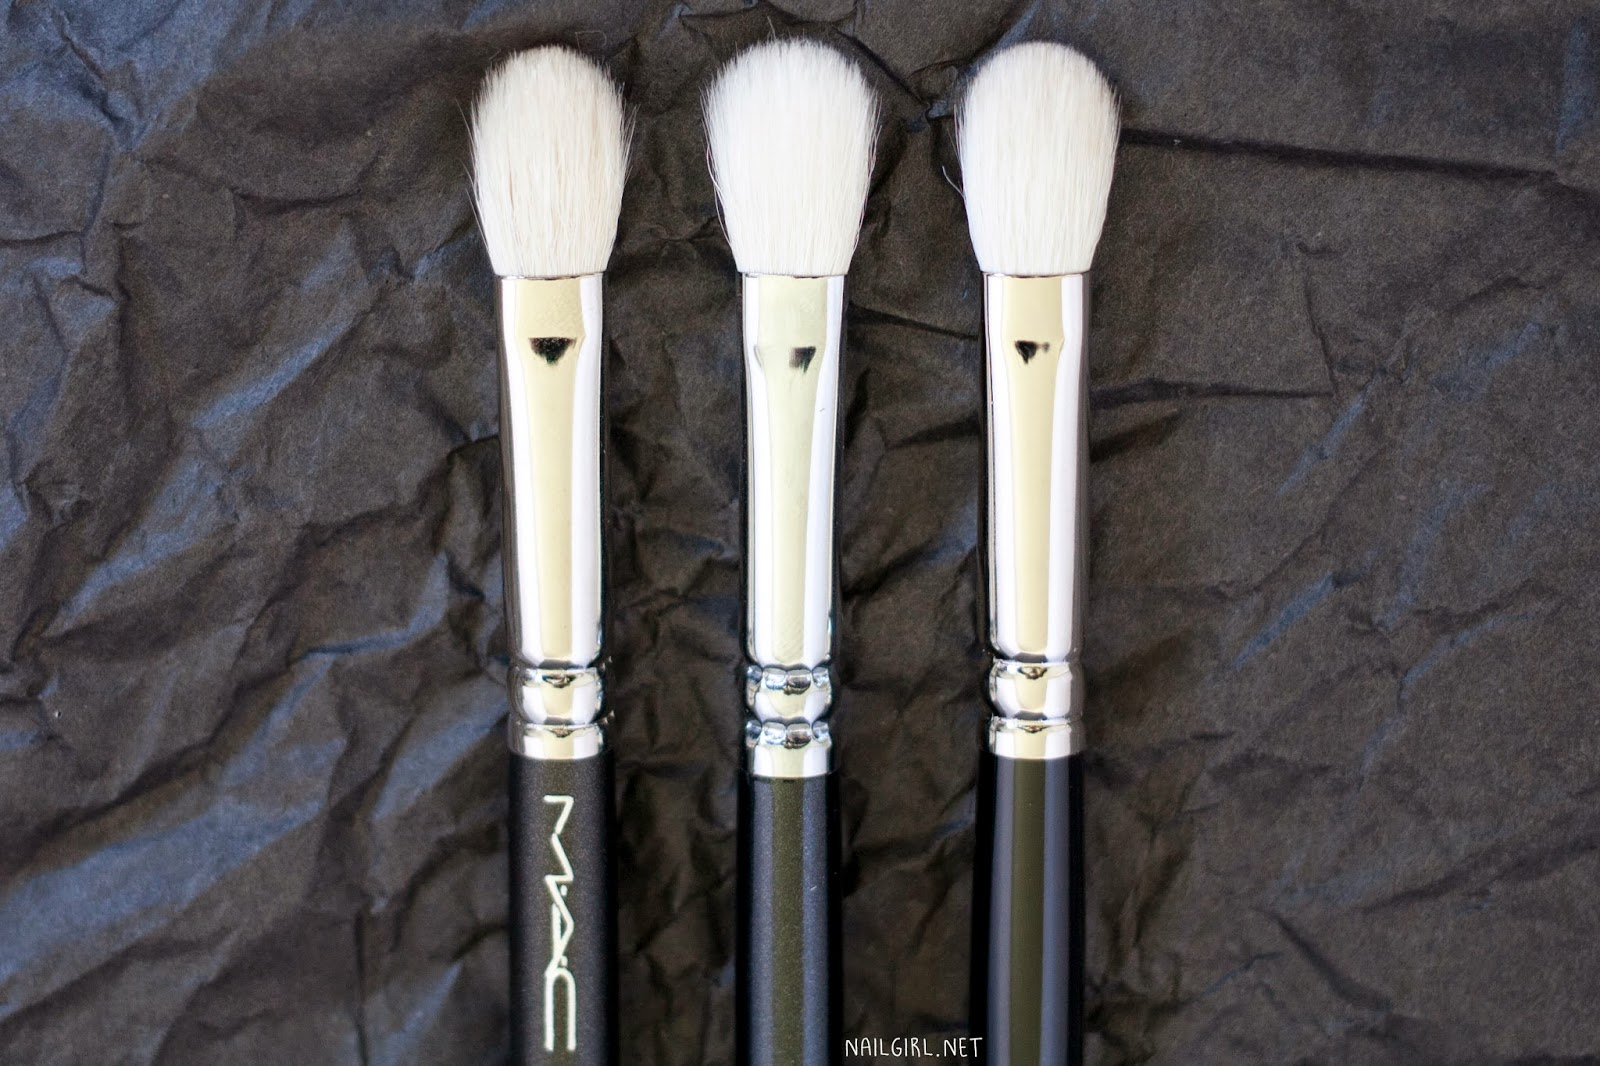 mac 217 zoeva 227 hakuhodo J5523 makeup brushes nc25